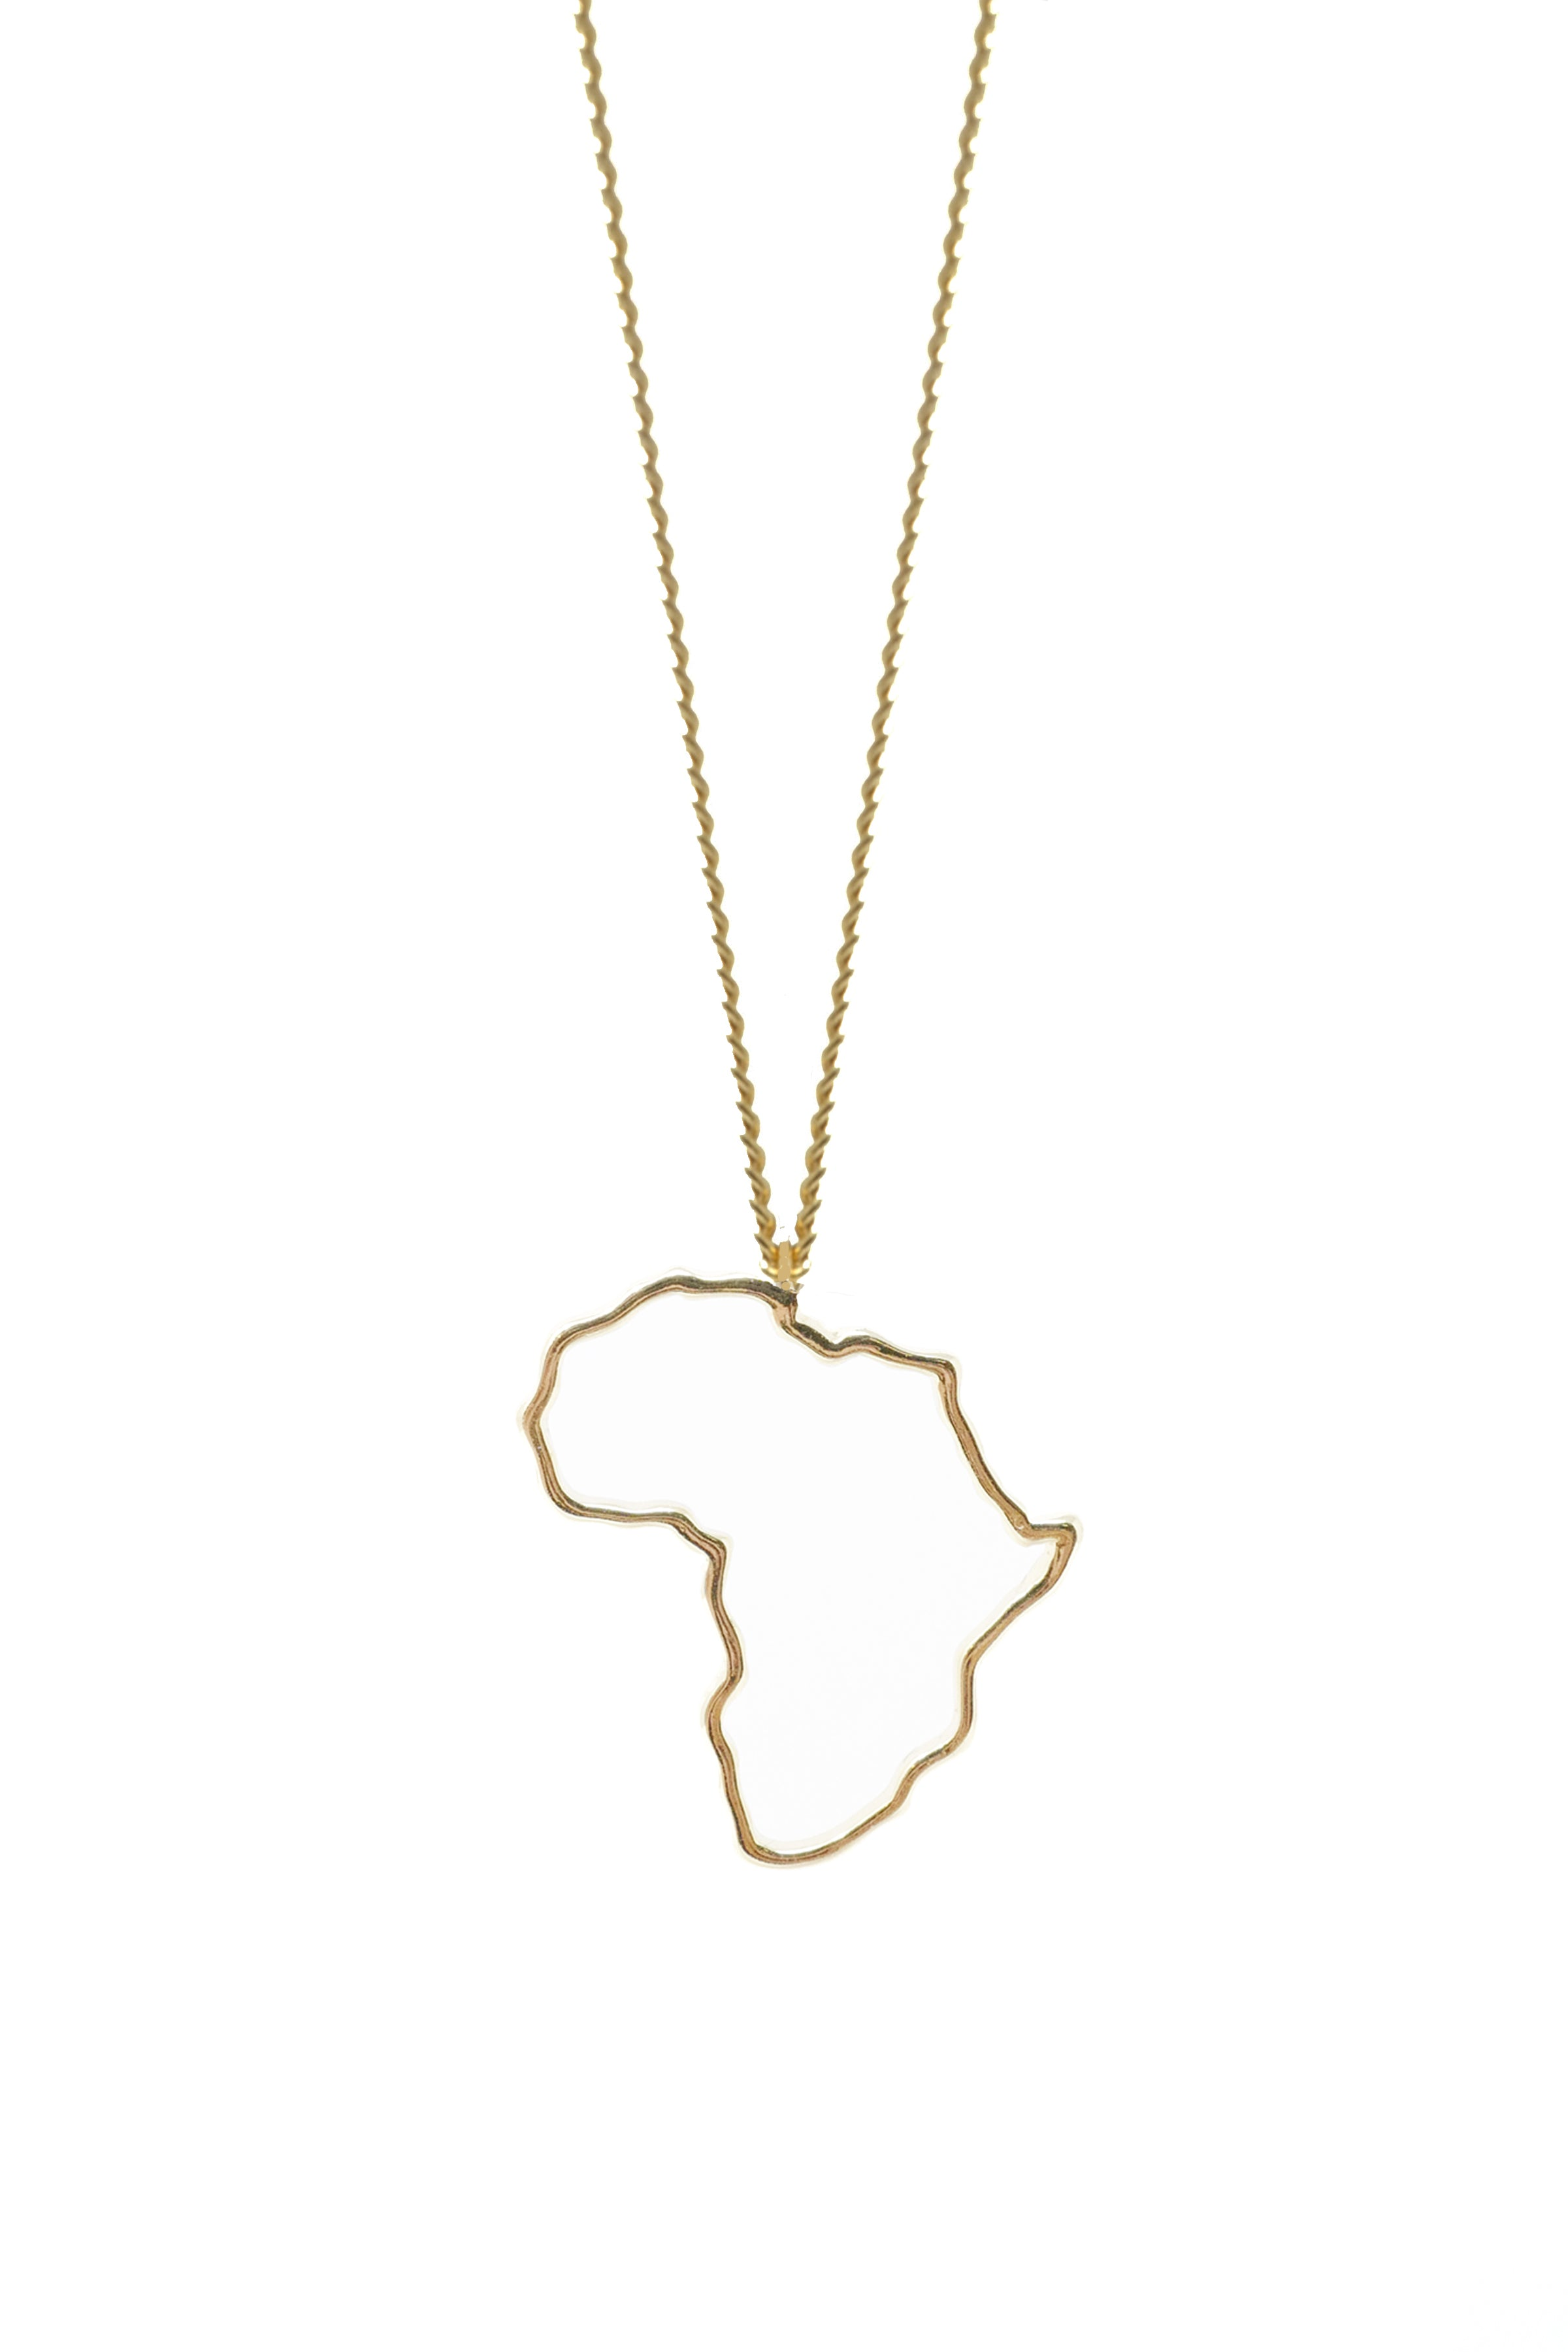 THE AFRICAN Necklace